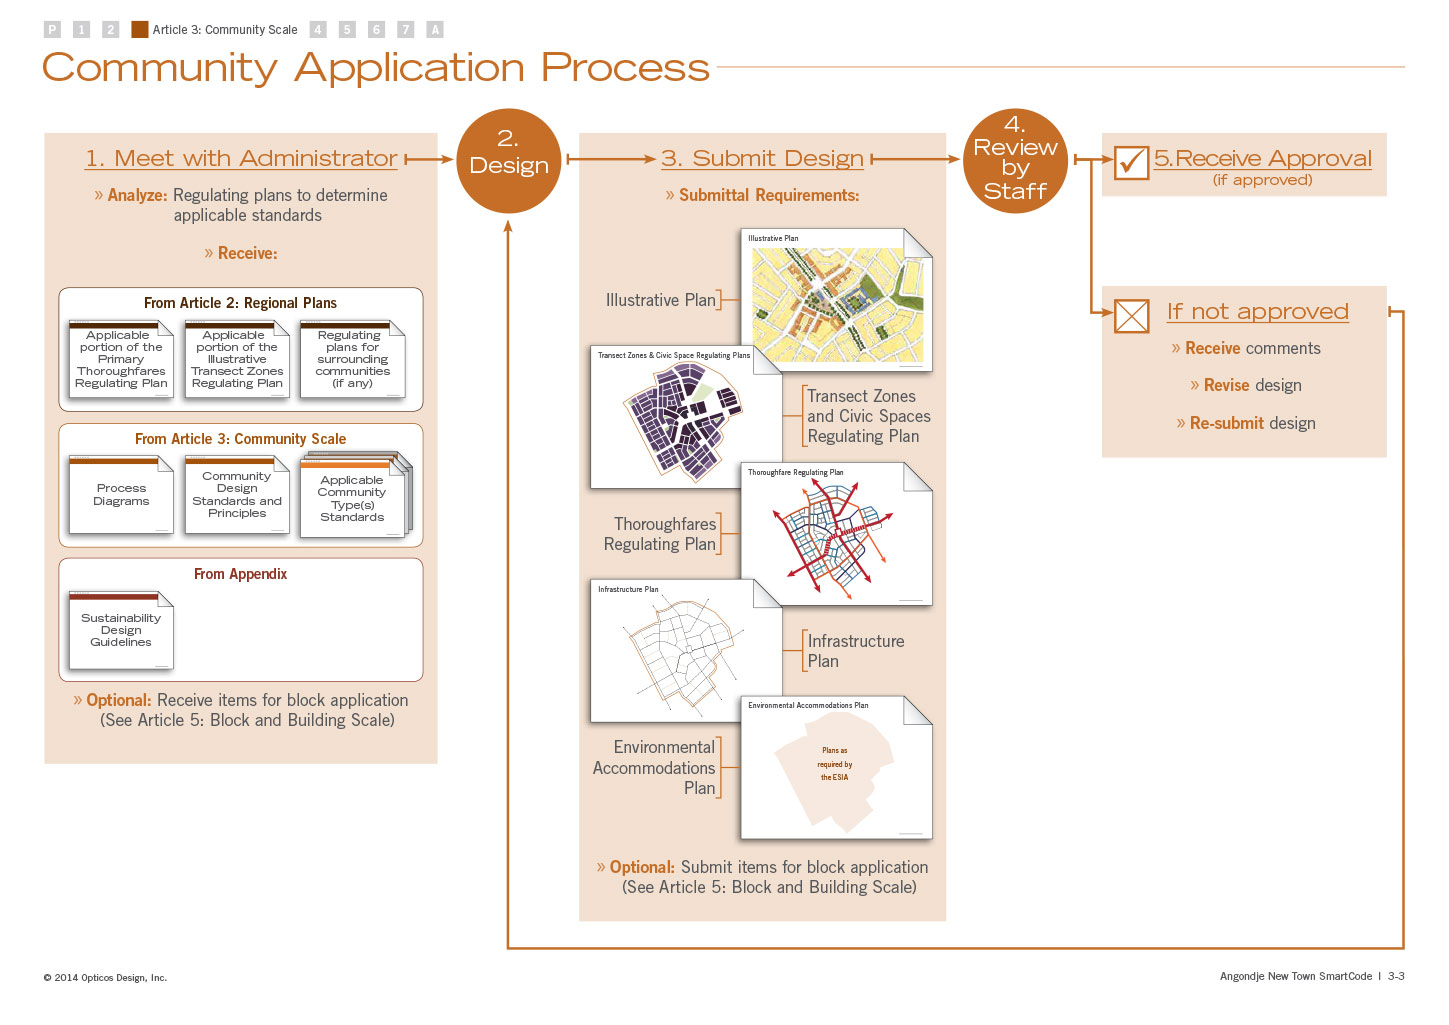 Community Application Process